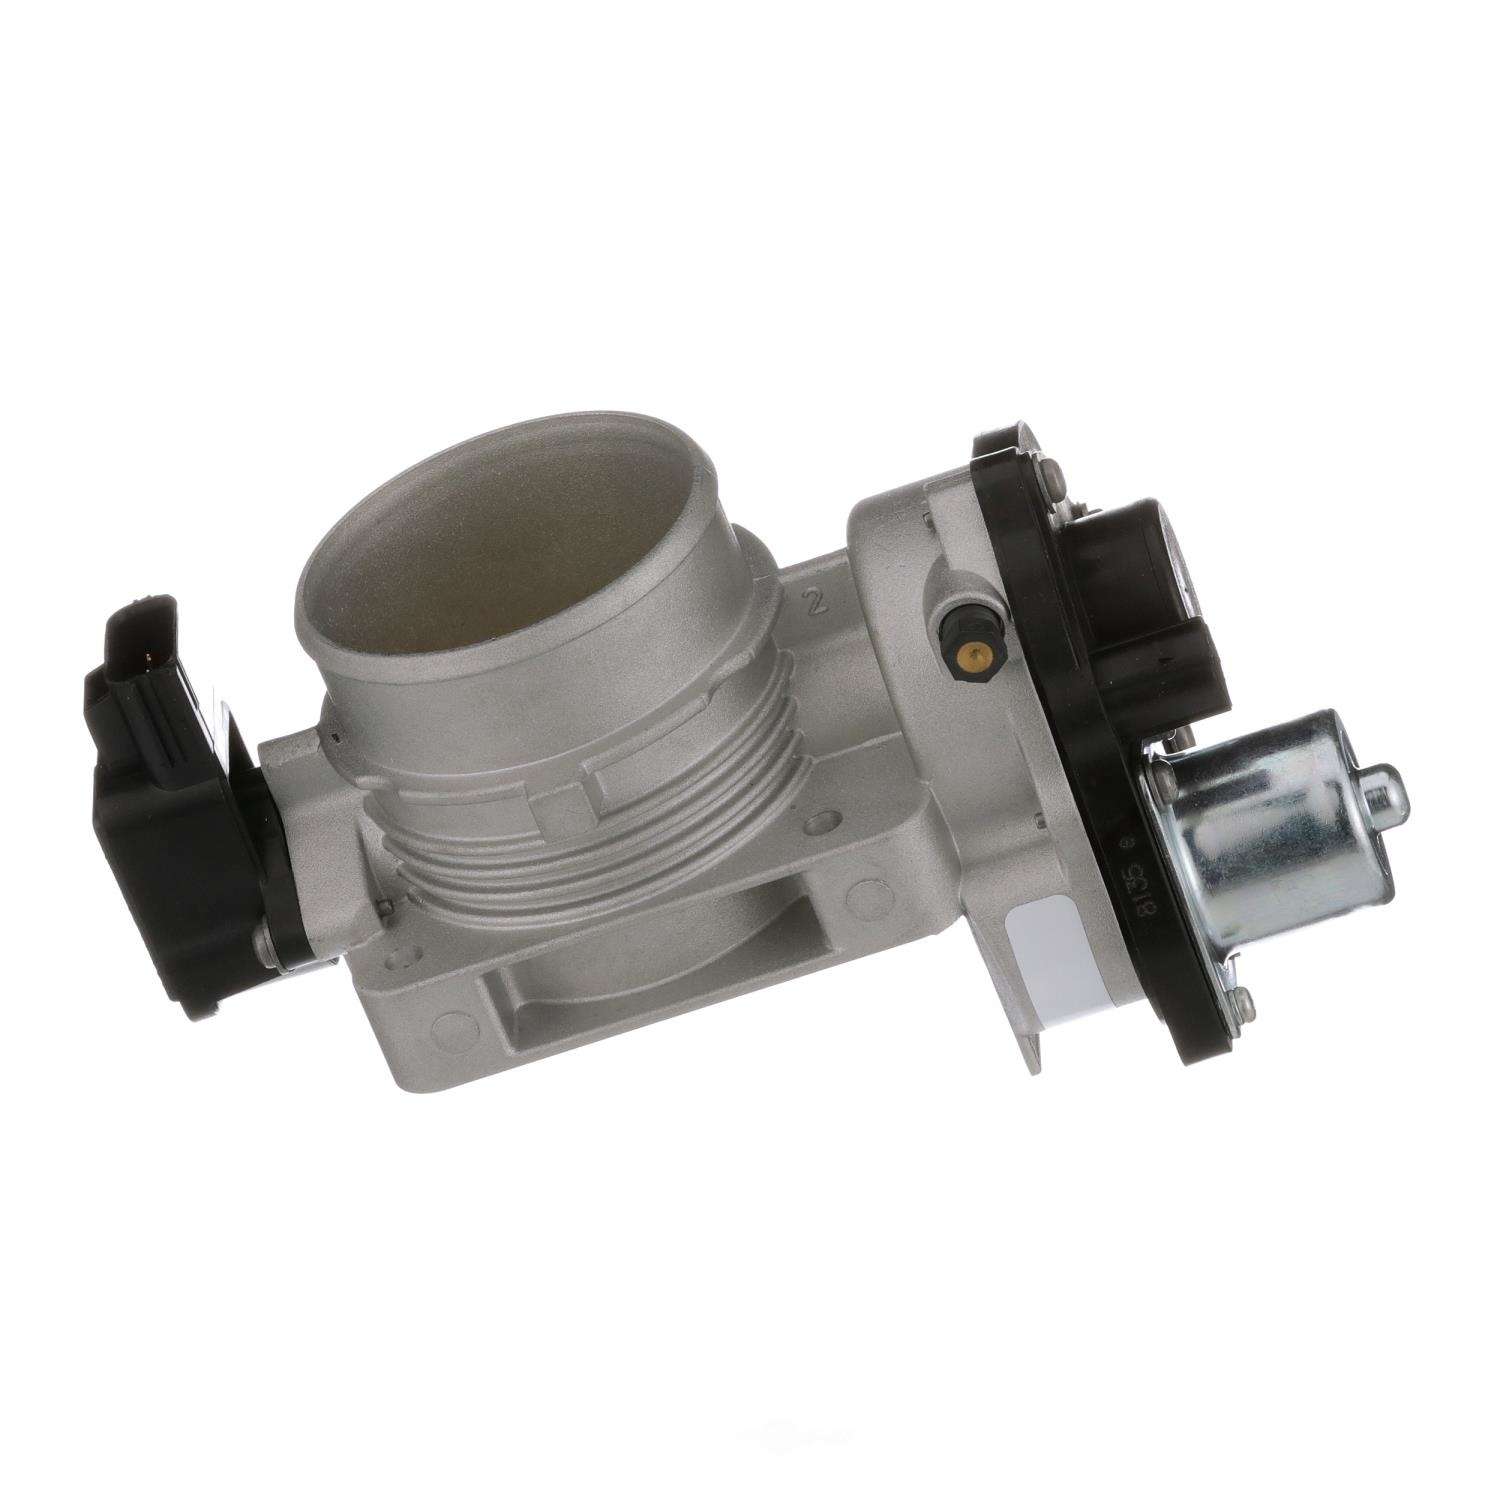 TECHSMART - Fuel Injection Throttle Body Assembly - TCS S20023